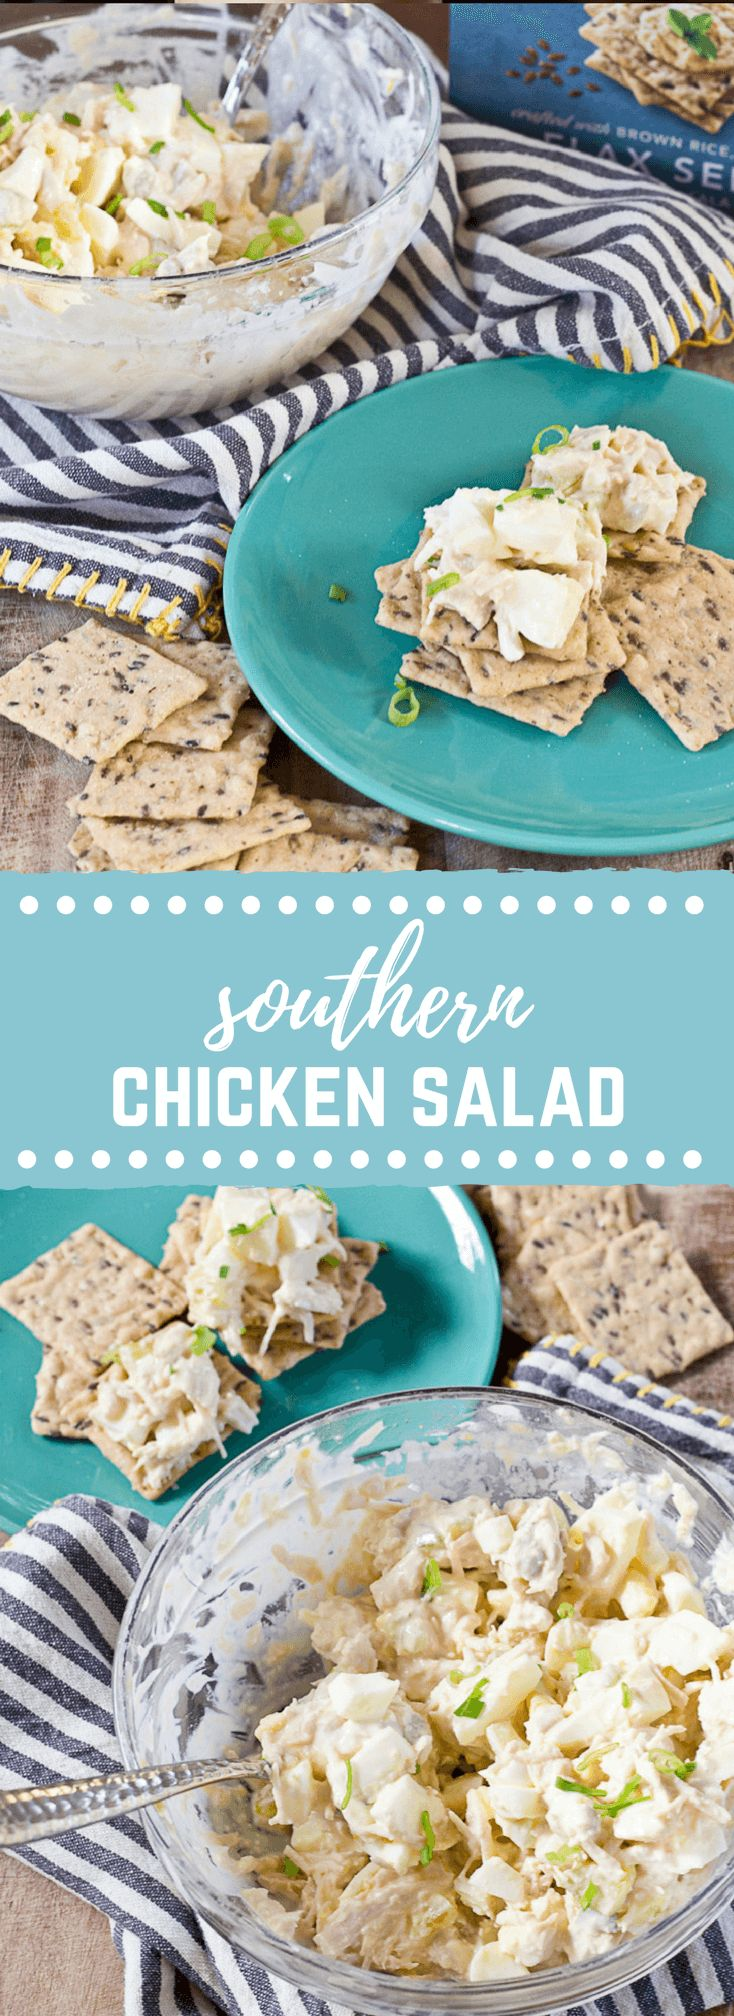 You've gotta make this easy Southern Chicken Salad....hard boiled eggs, relish, celery and mayo. Make life and meal prep simple with this classic recipe.